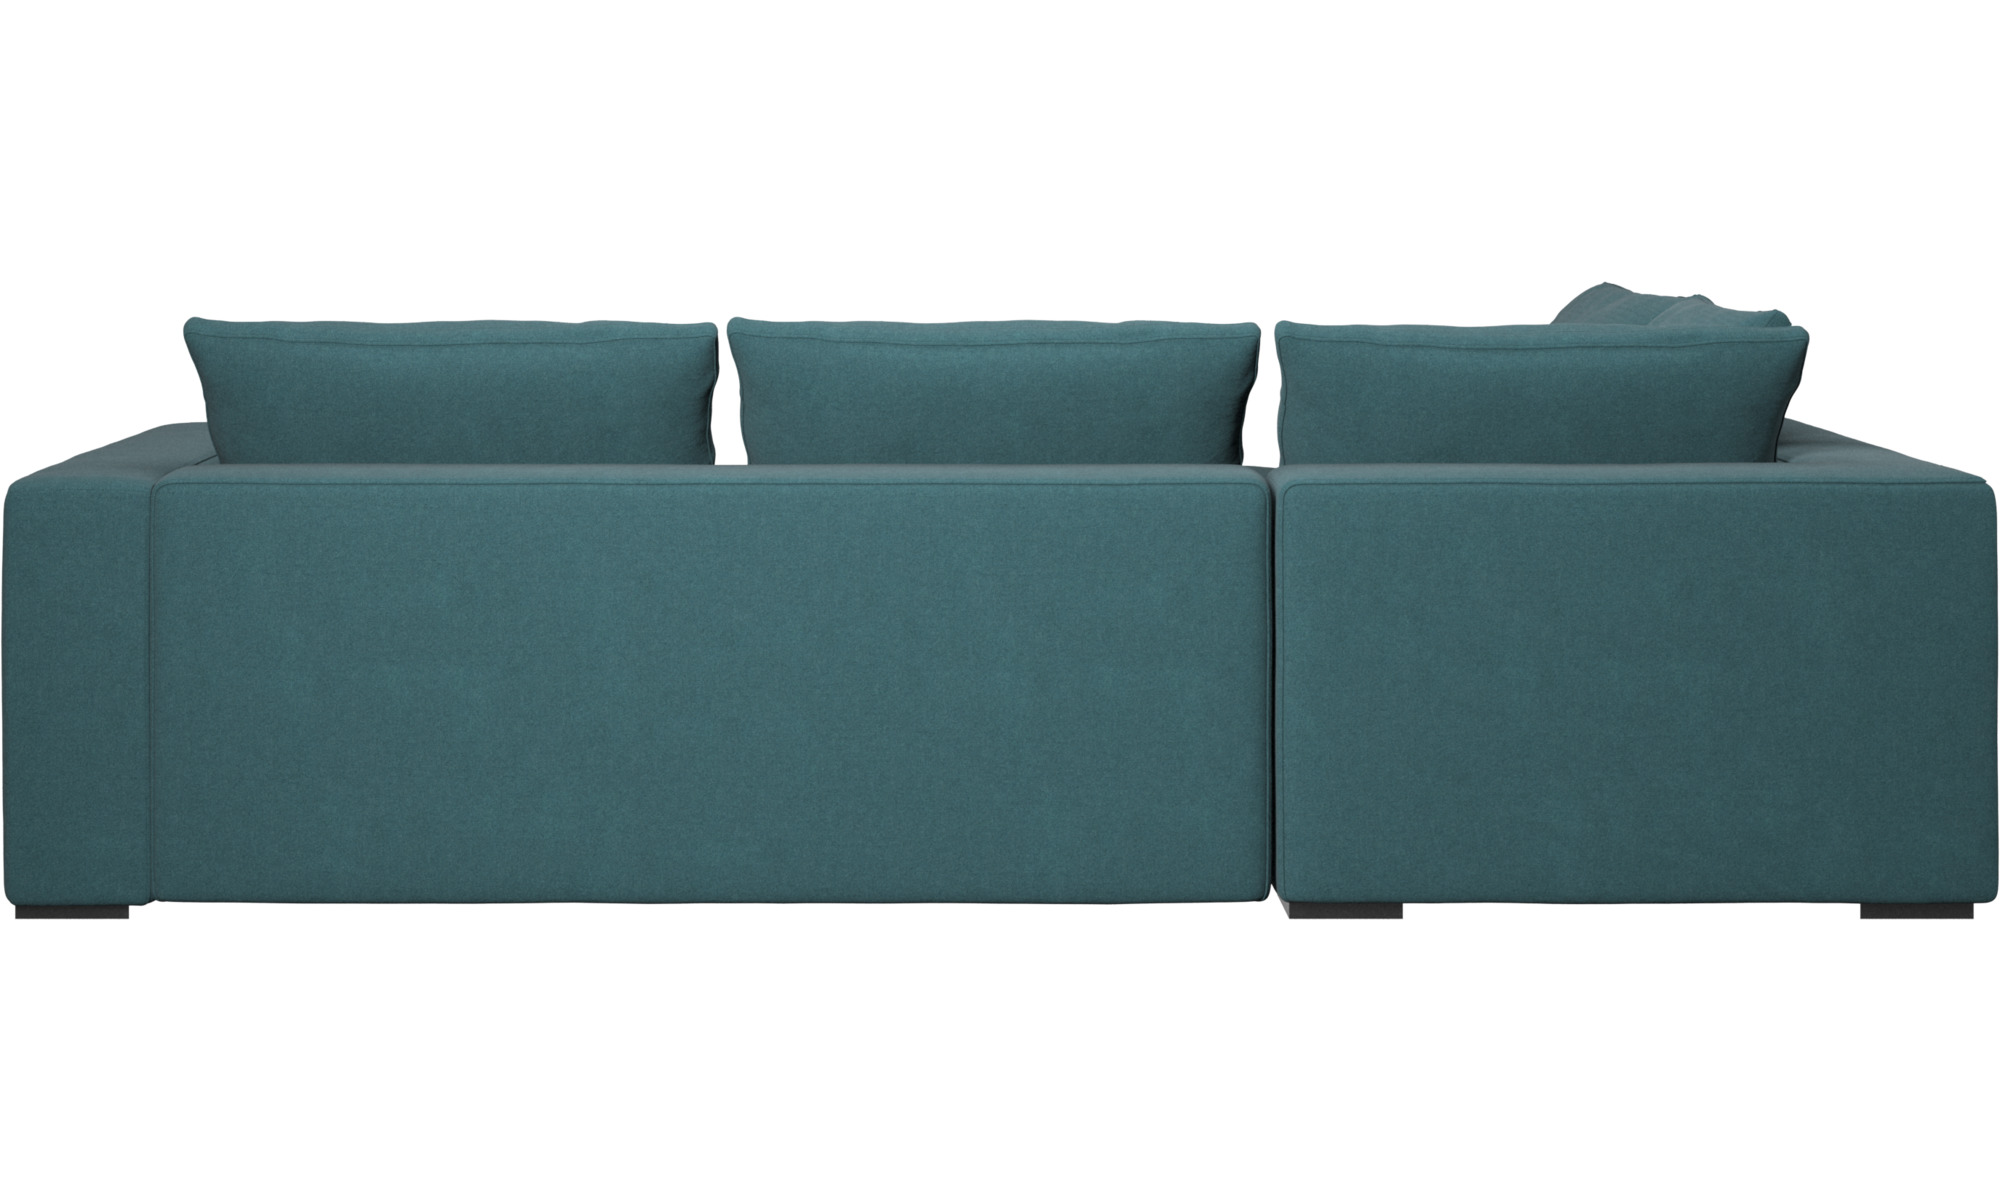 cheapest sofas in ireland michigan small sofa cheap fabric corner glasgow | brokeasshome.com